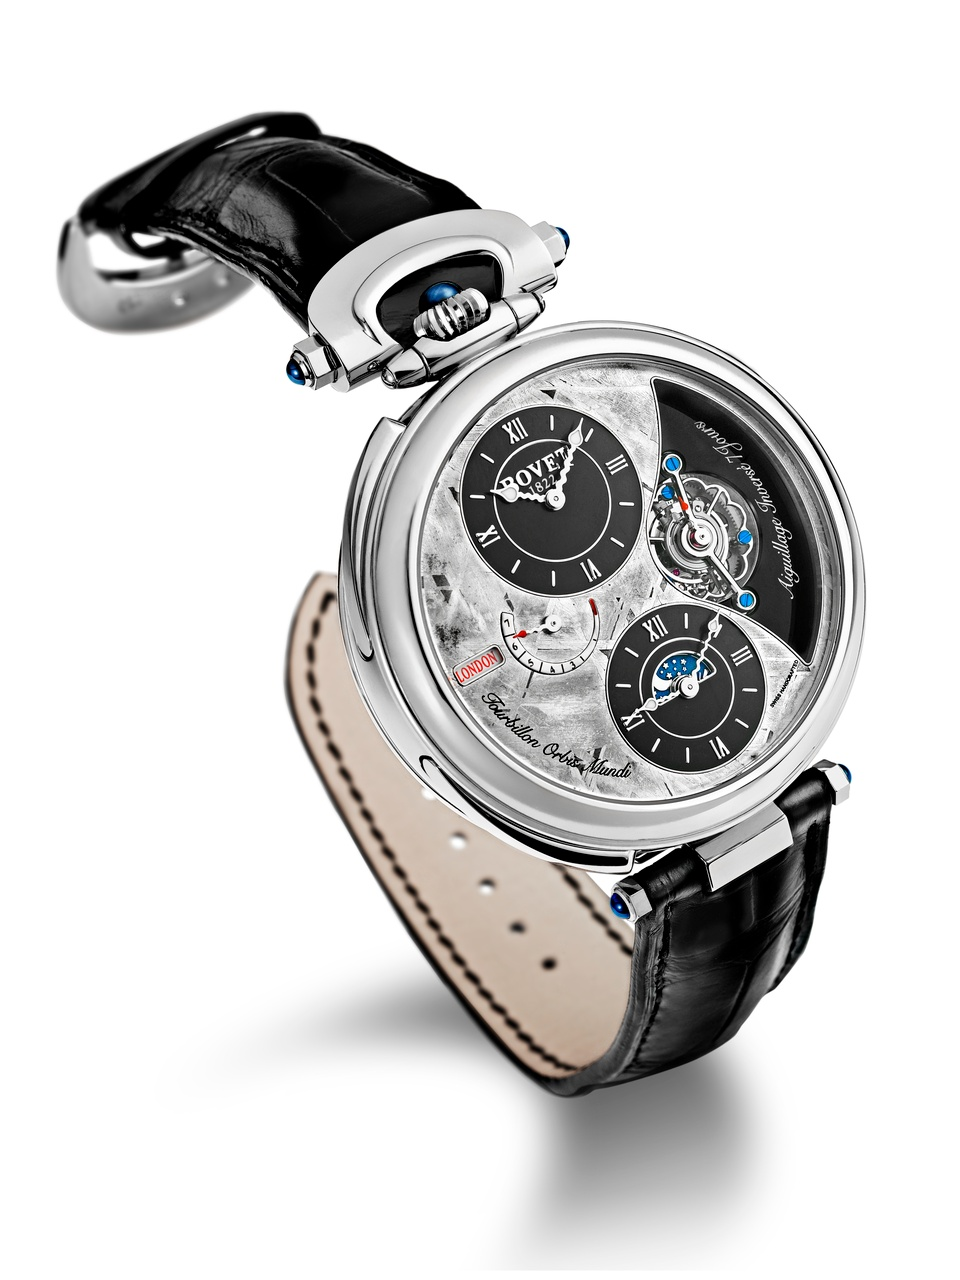 Bovet Watch   Amadeo Fleurier Grandes Complications   Ref. Nr. AIOM004    Call 312-944-3100  | For Availability